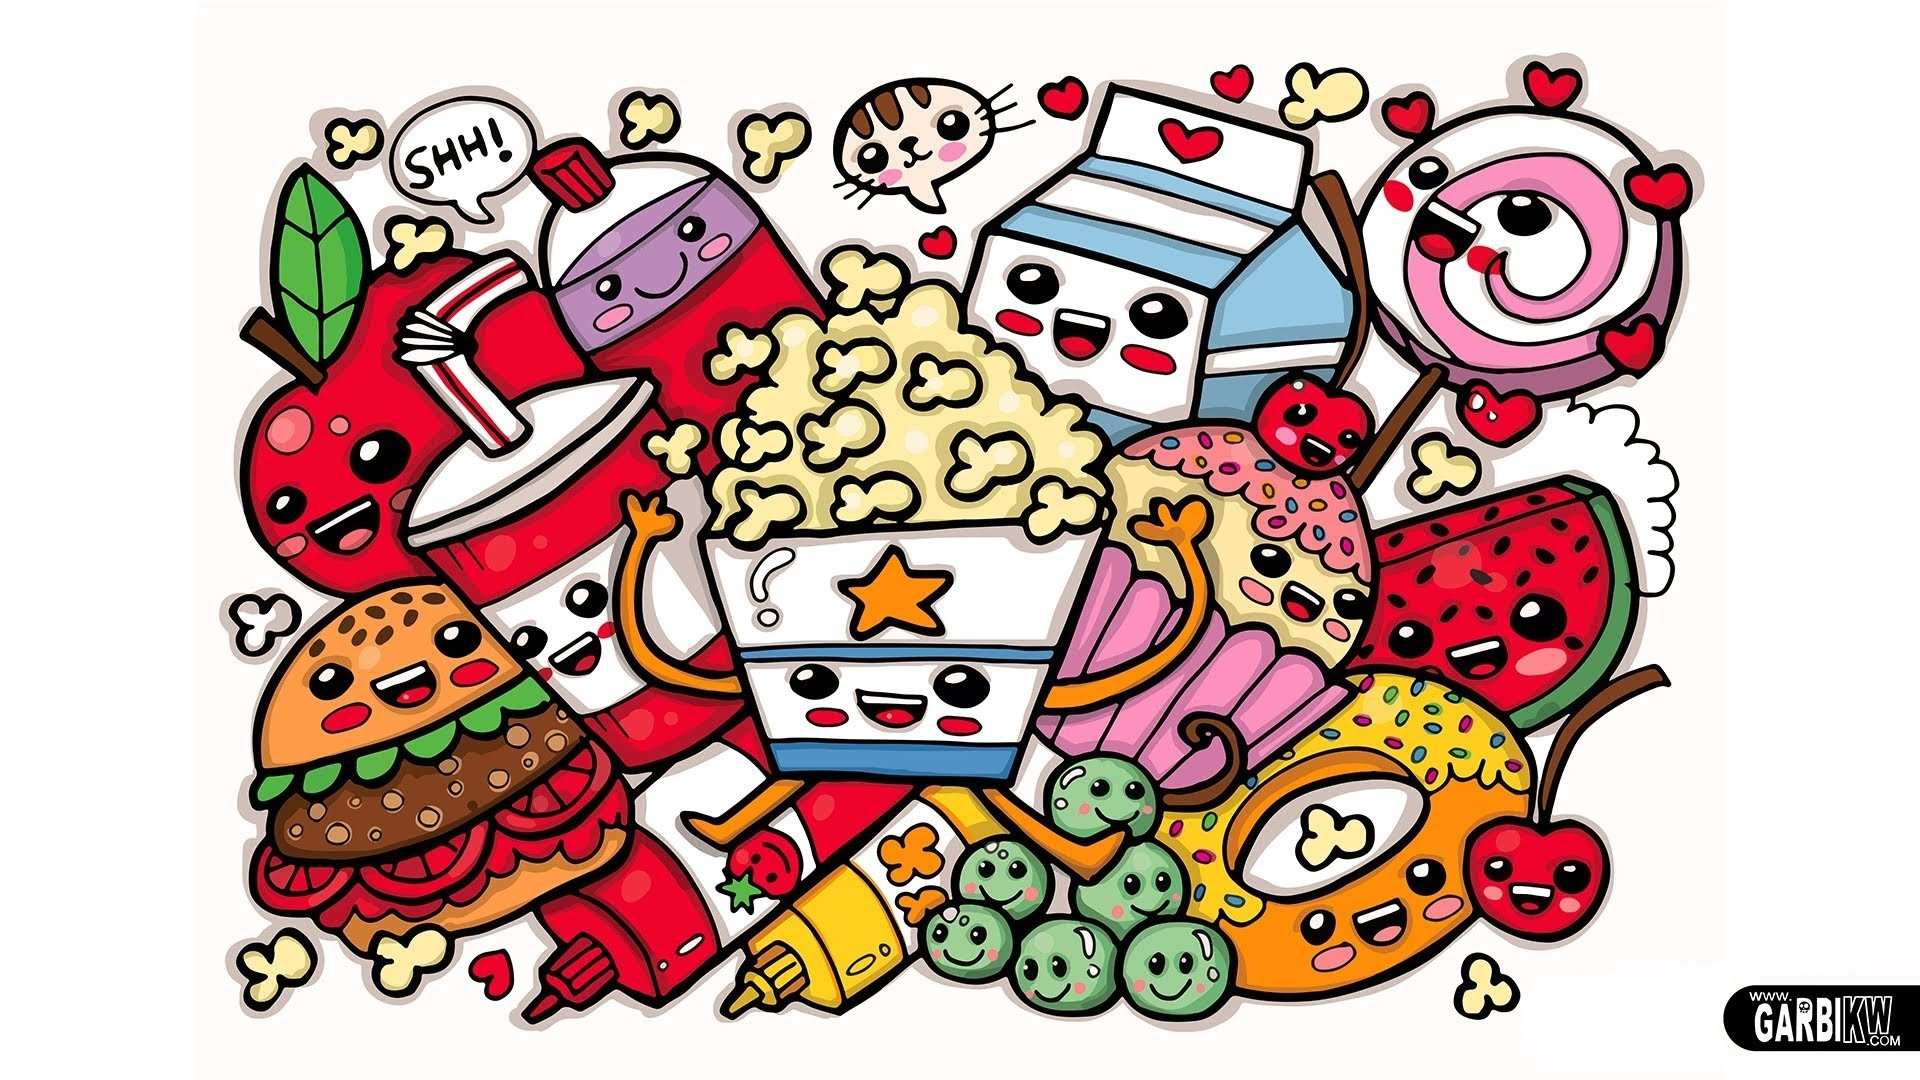 1920x1080 Cute Food Coloring Pages To Print Easy Doodle Art With Color 1920x1080 Wallpaper Teahub Io